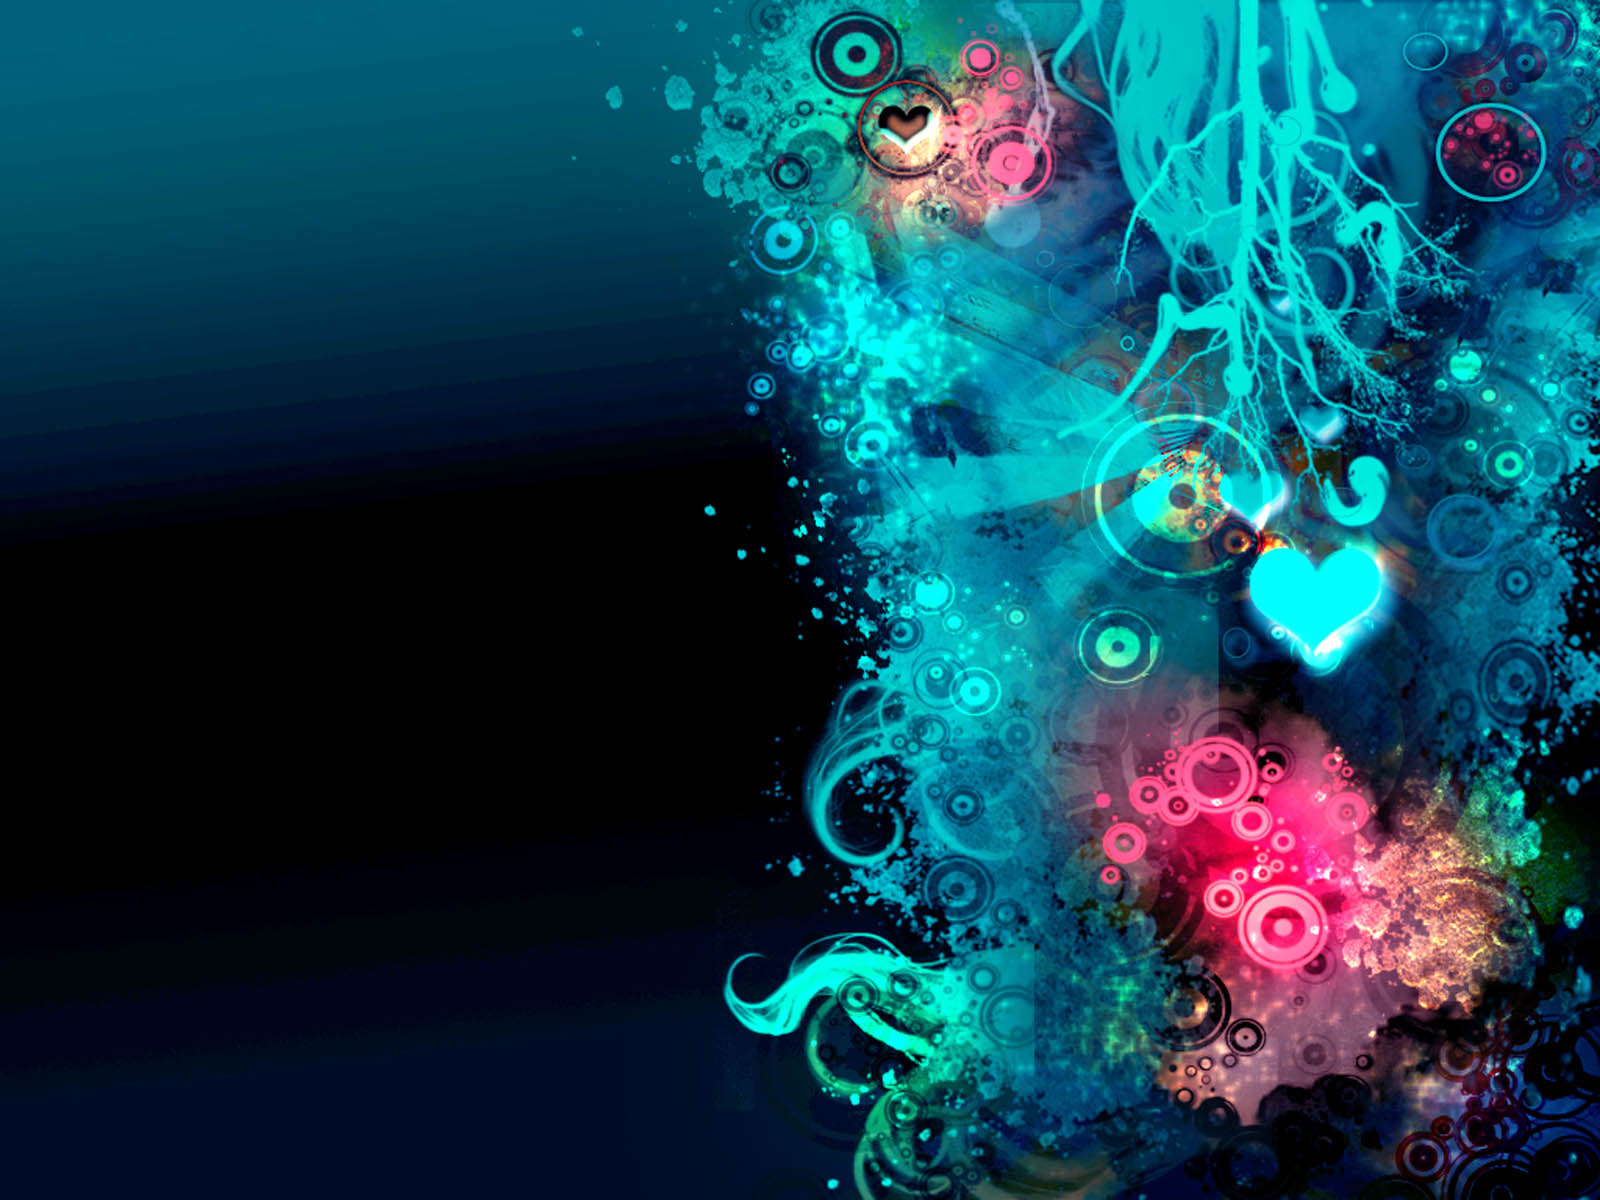 Abstract Love Images Wallpaper HD #21991 #573 Wallpaper | MoshLab